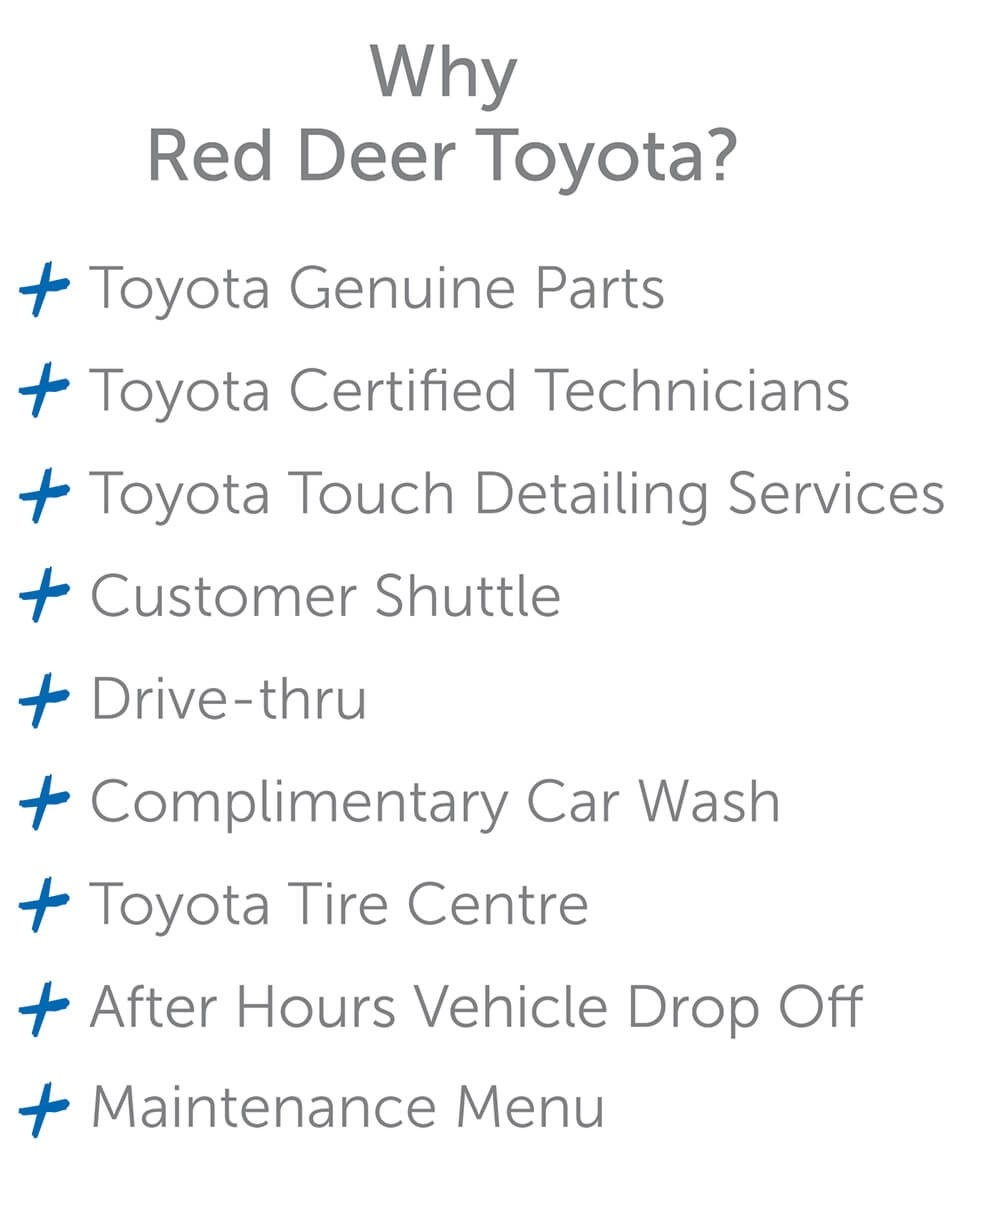 list of advantages for getting your vehicle serviced at red deer toyota